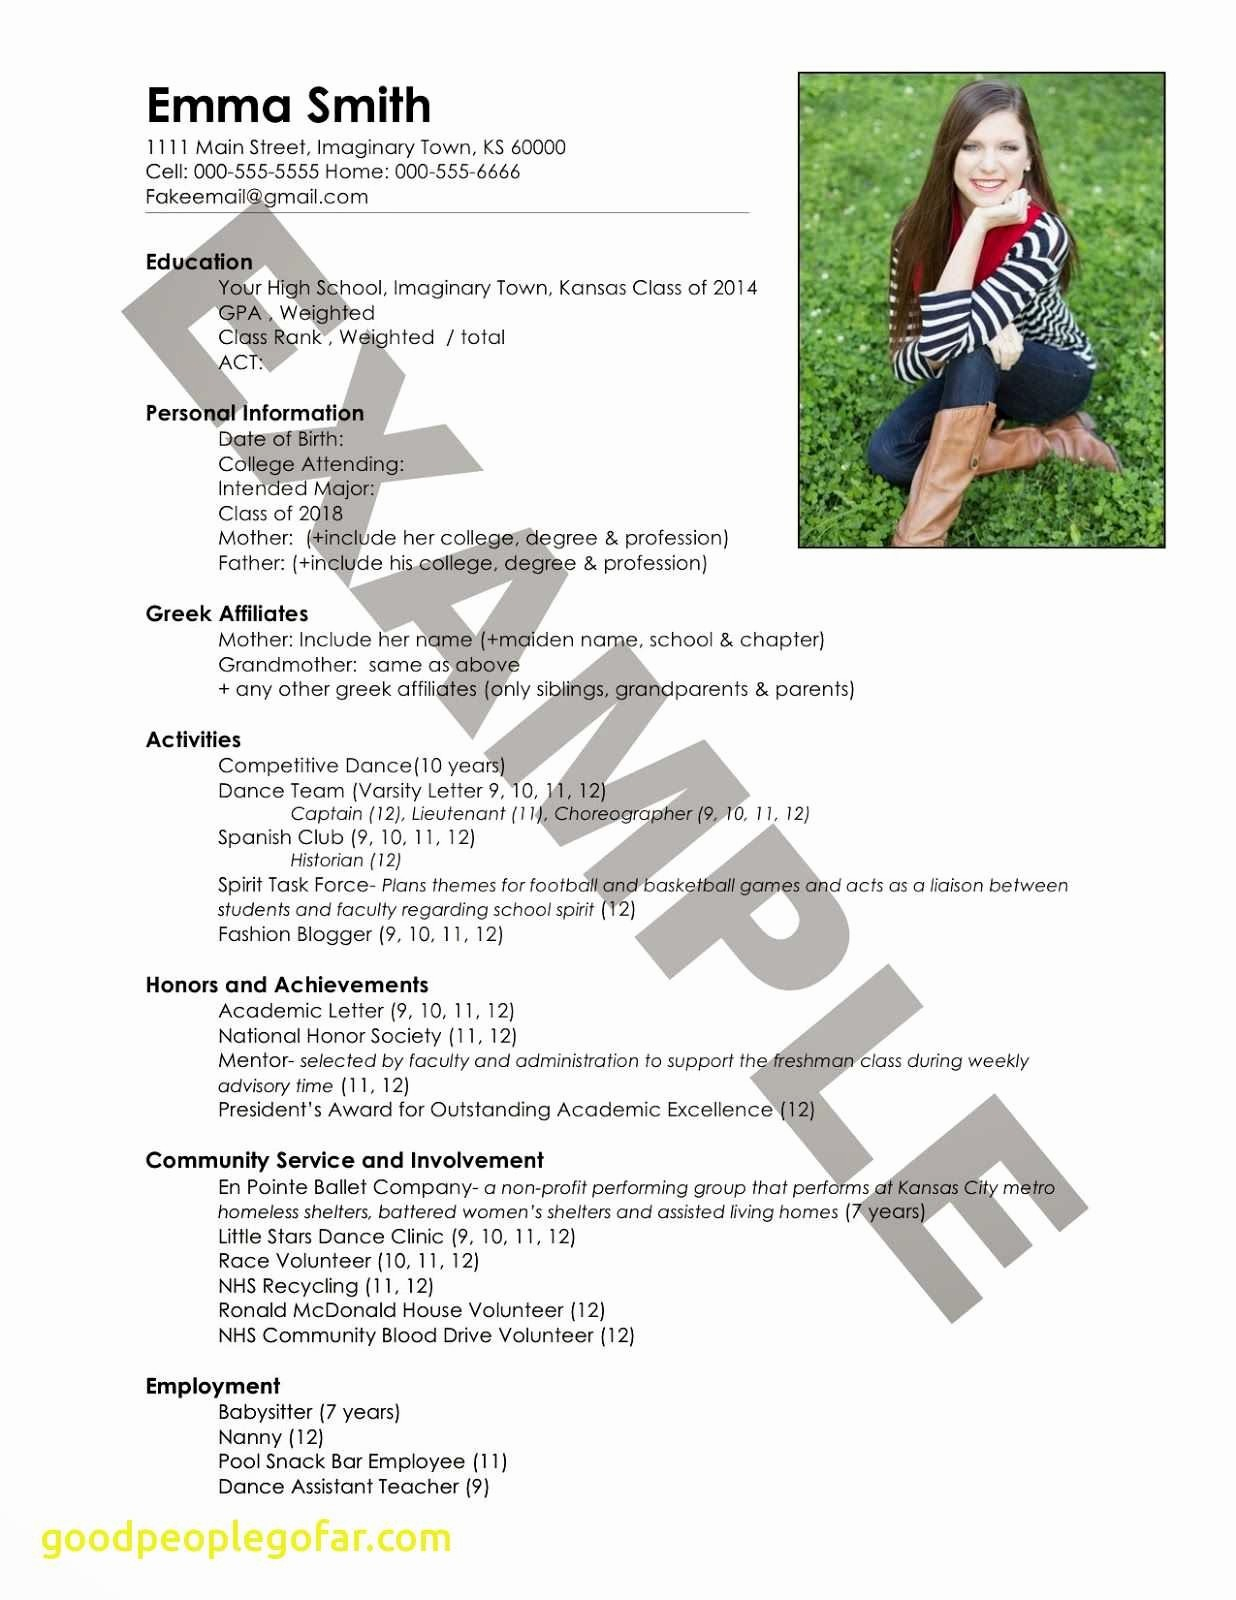 Professional Dancer Resume Template - Volunteer Work Resume Likeable Helpdesk Resume Template New